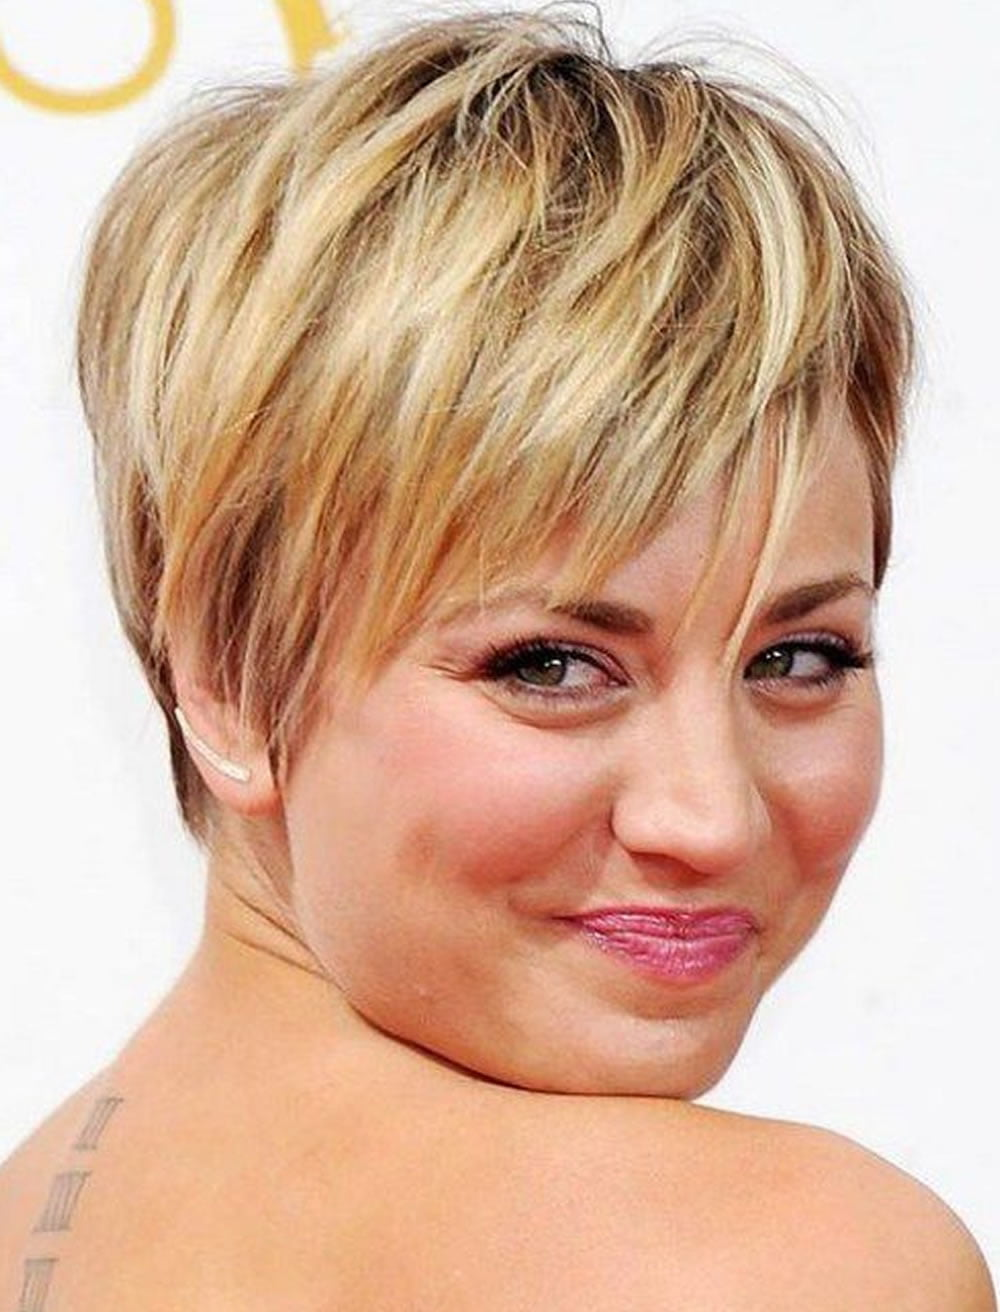 Short Haircuts For Round Face Thin Hair Ideas For 2018 Page 2